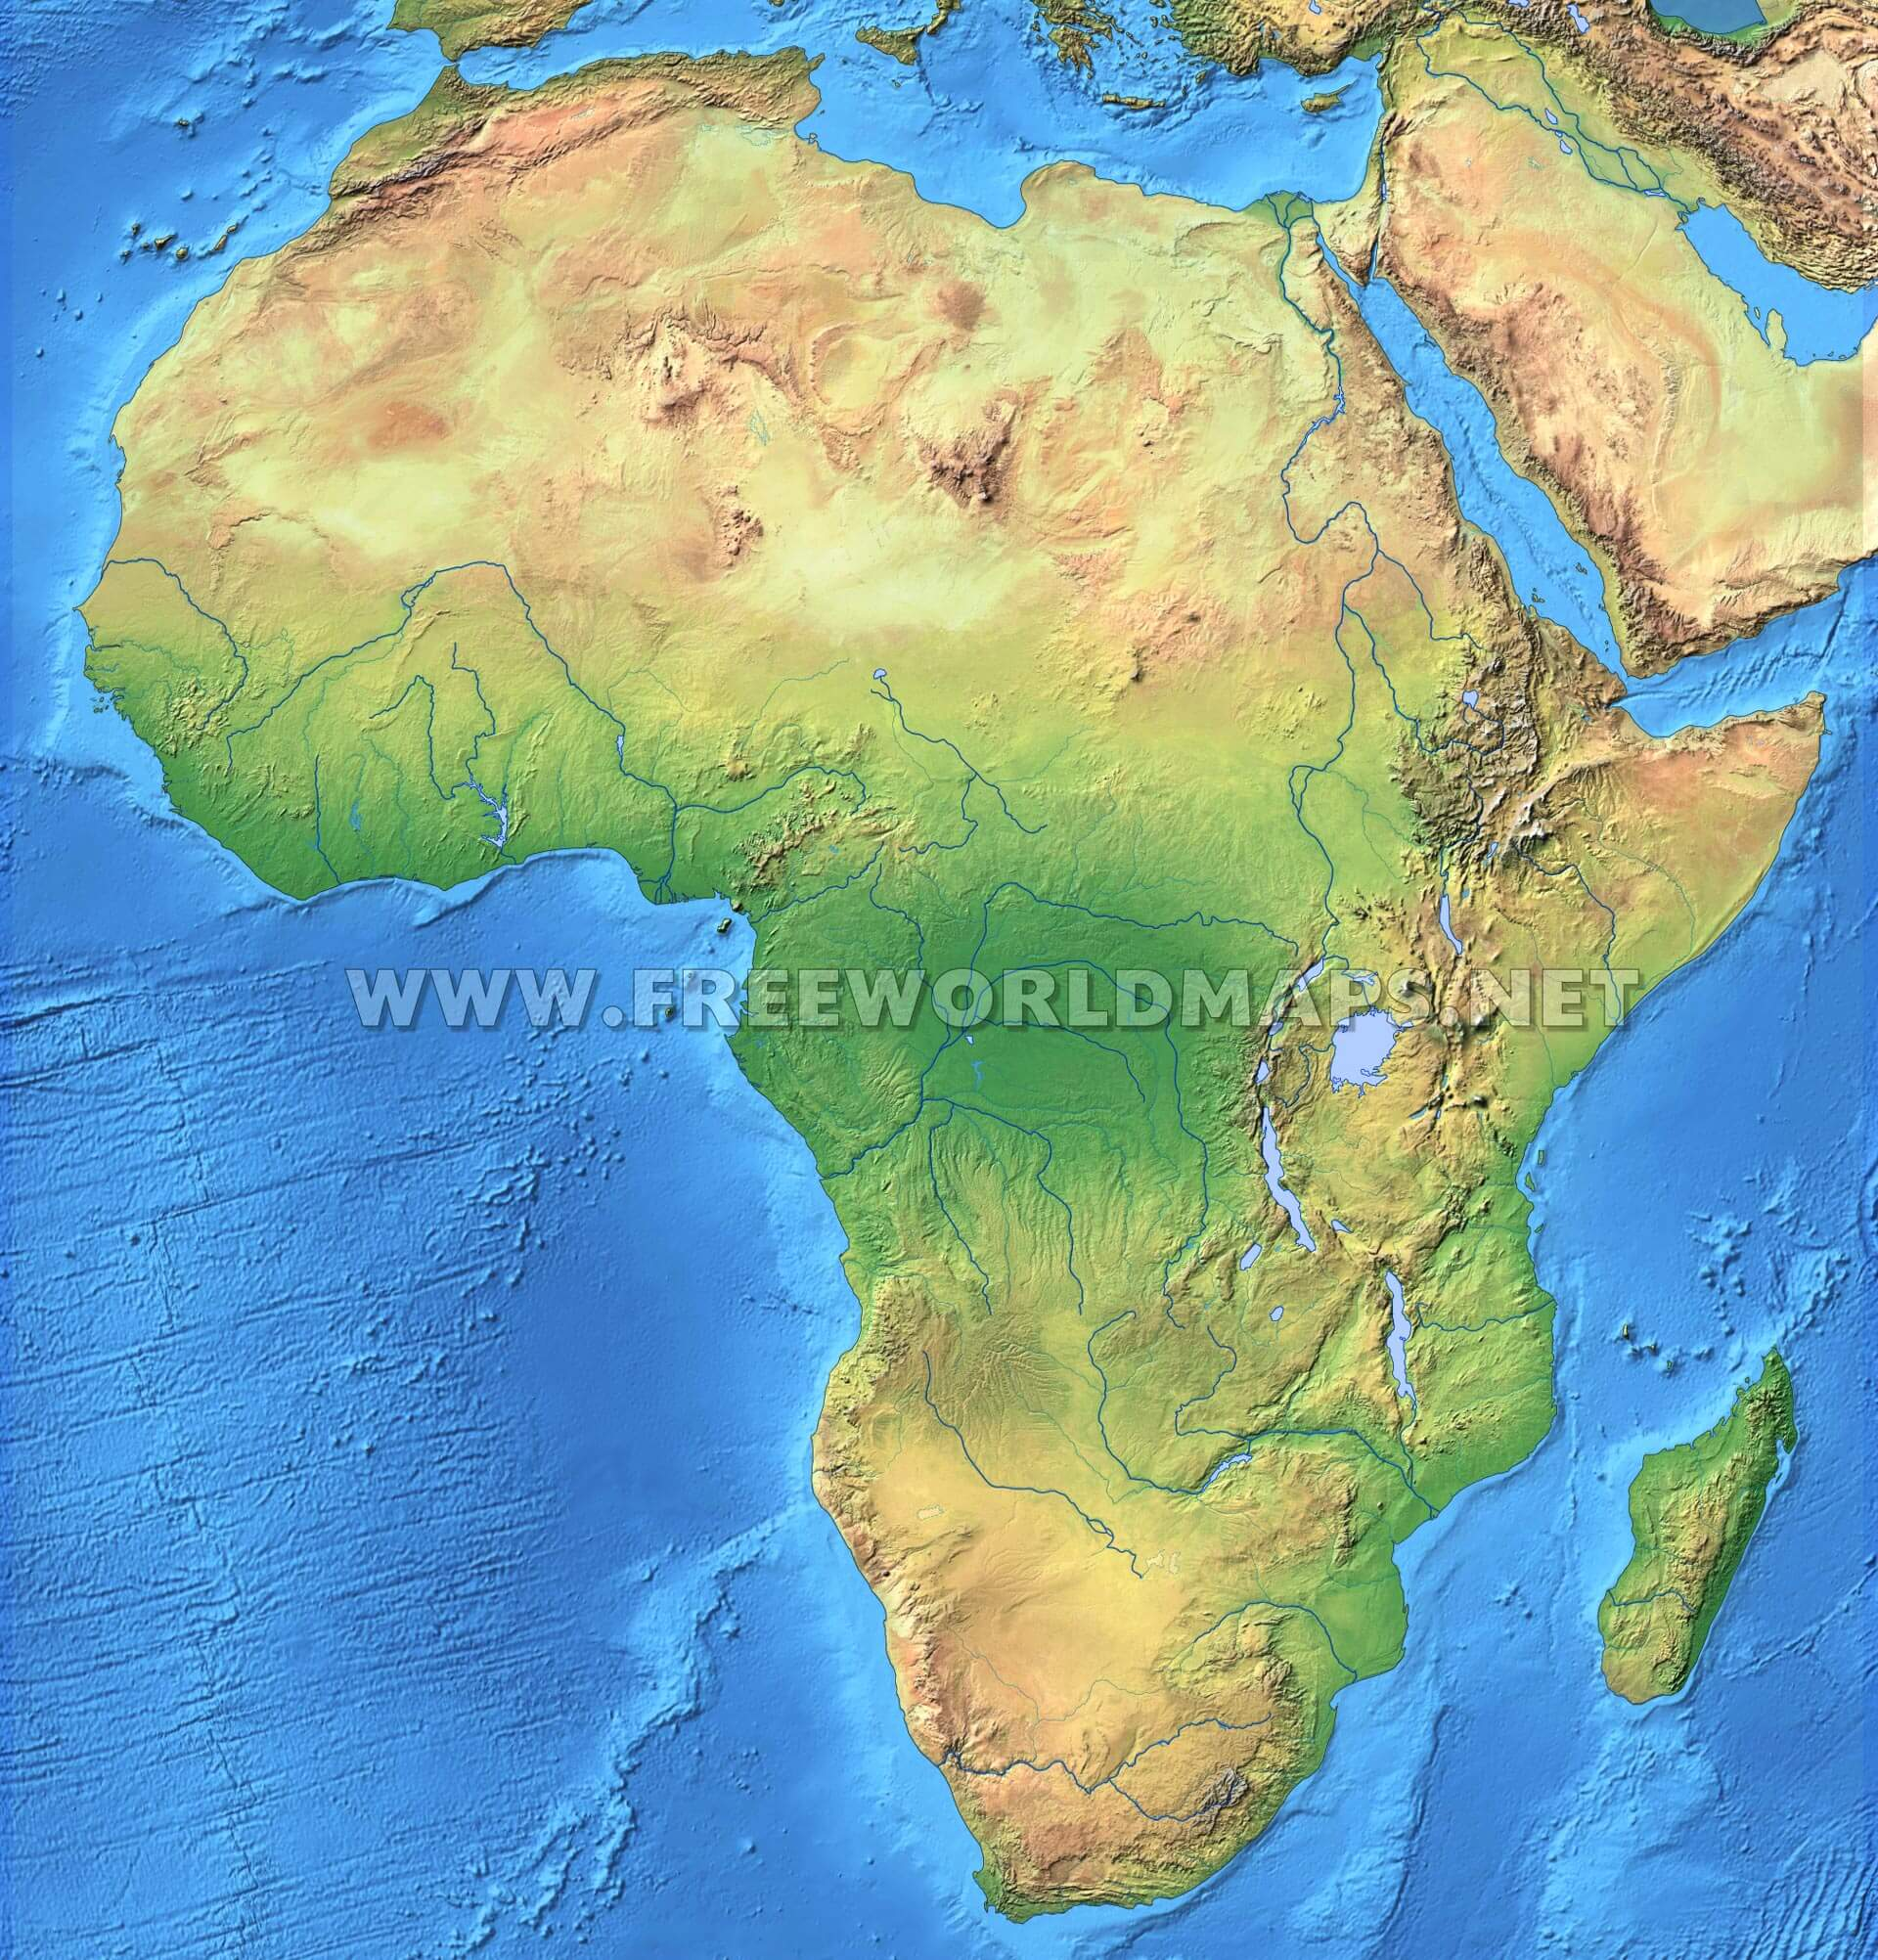 Africa Physical Map – Freeworldmaps.net on physical regions of africa, physiographic map africa, geographic features of africa, world atlas africa, landforms and waterways in africa, atlas mt africa map, world map with africa, cameroon africa, bodies of water near africa, independence in africa, atlas of asia's physical features, landforms in west africa, physical landscape of africa, canary islands africa, atlas of southeast asia, atlas map of asia, landmarks in central africa, atlas of north africa, phyiscal atlas of africa, online atlas of africa,